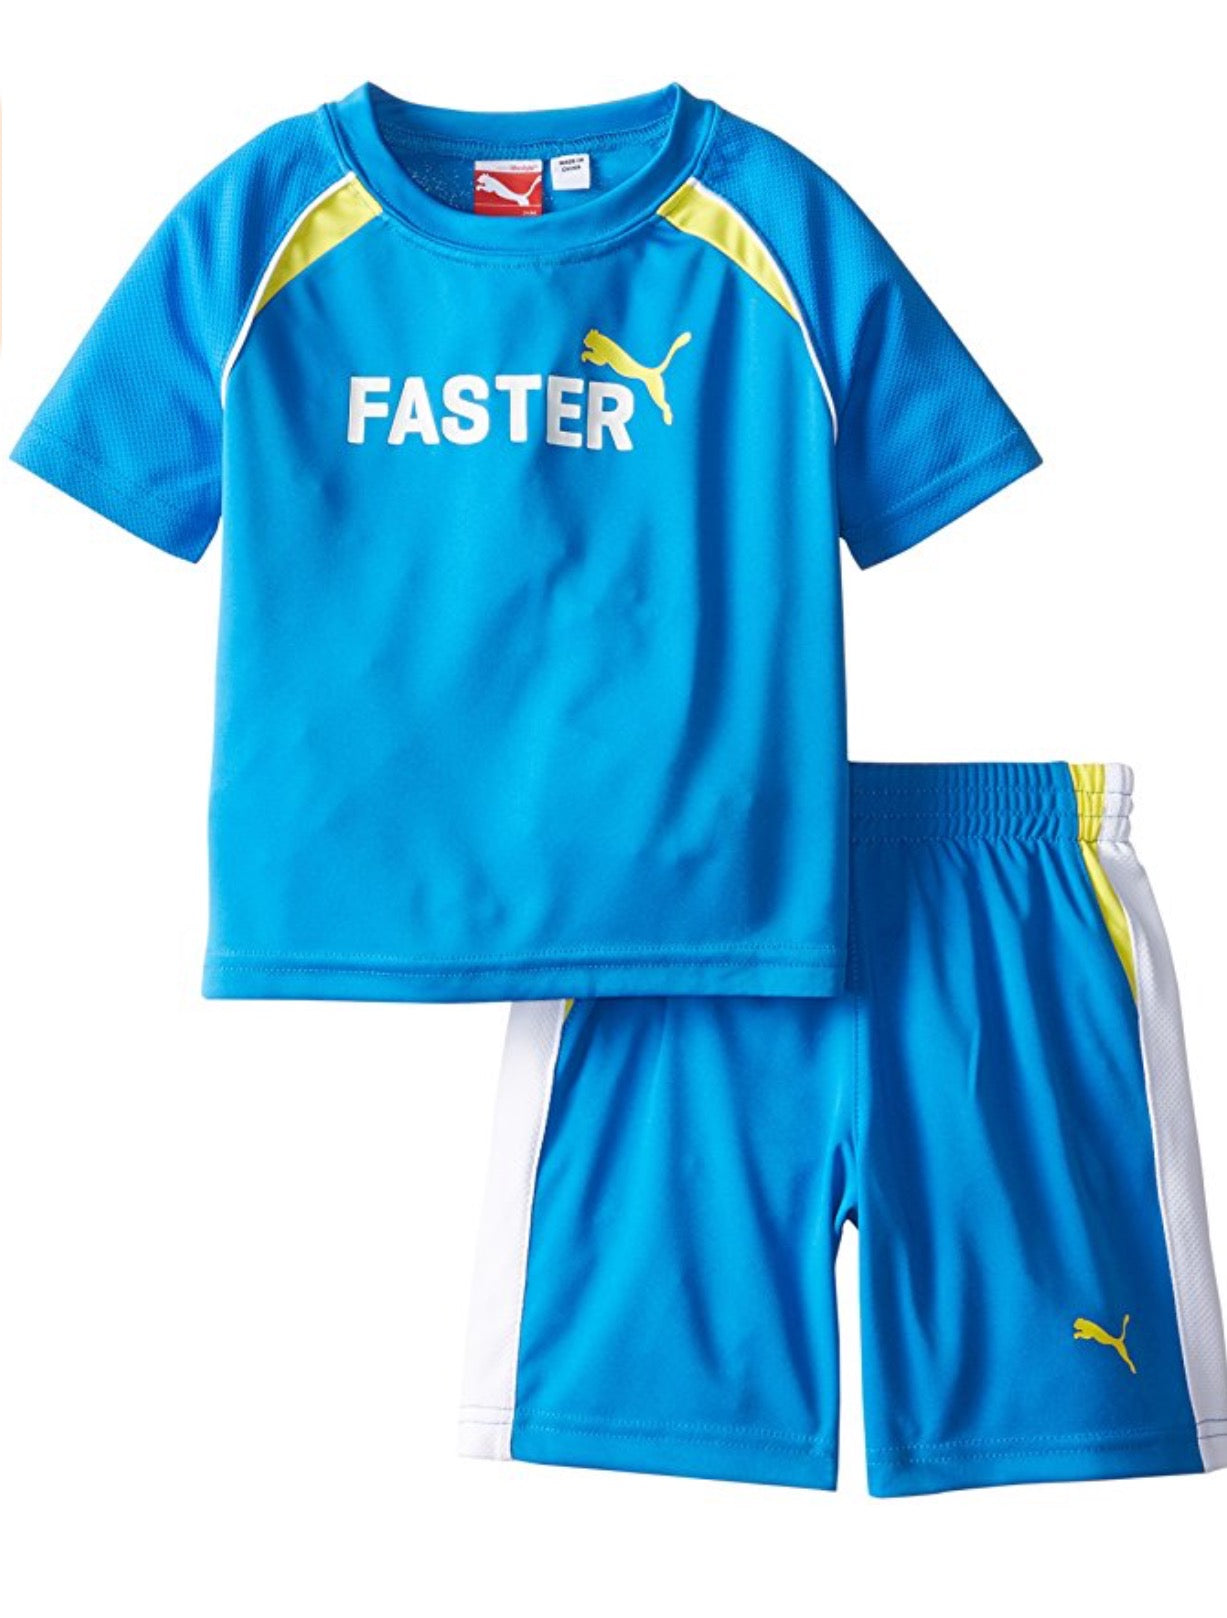 Roll over image to zoom in PUMA Puma Baby Boy s Short Set Faster